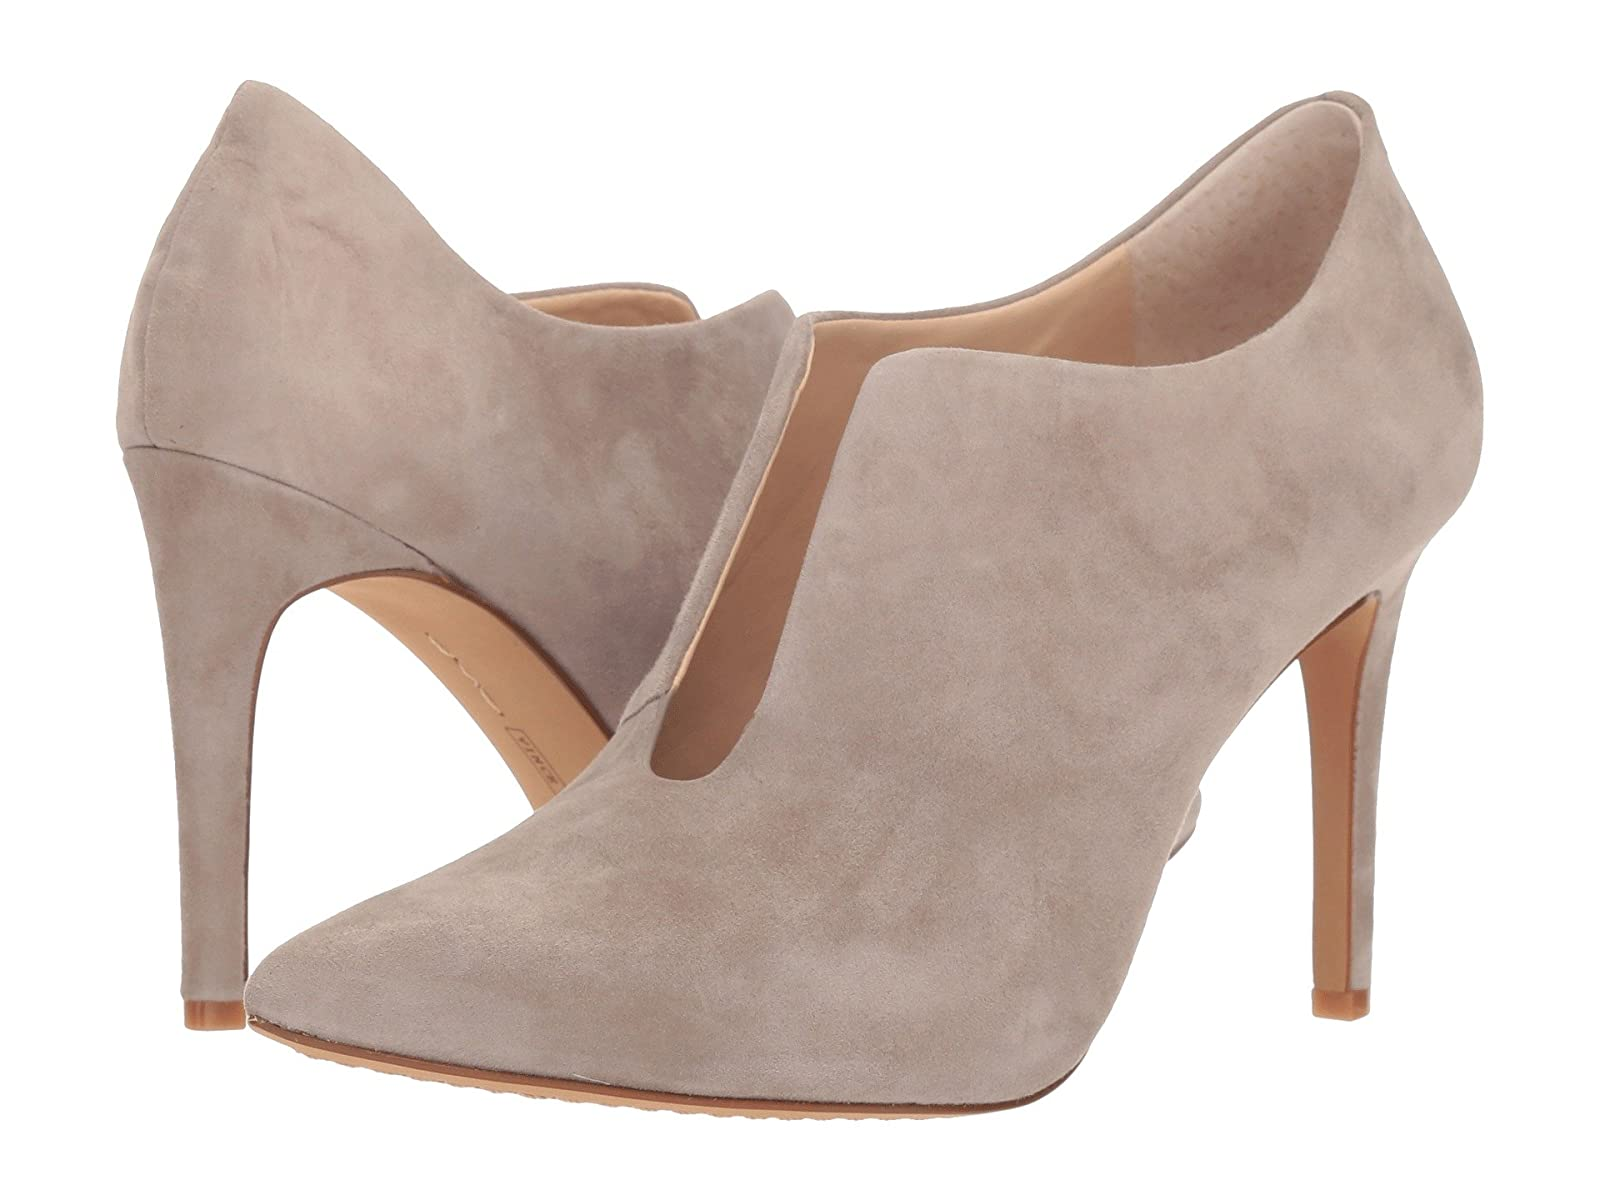 Vince Camuto MetseyaAtmospheric grades have affordable shoes